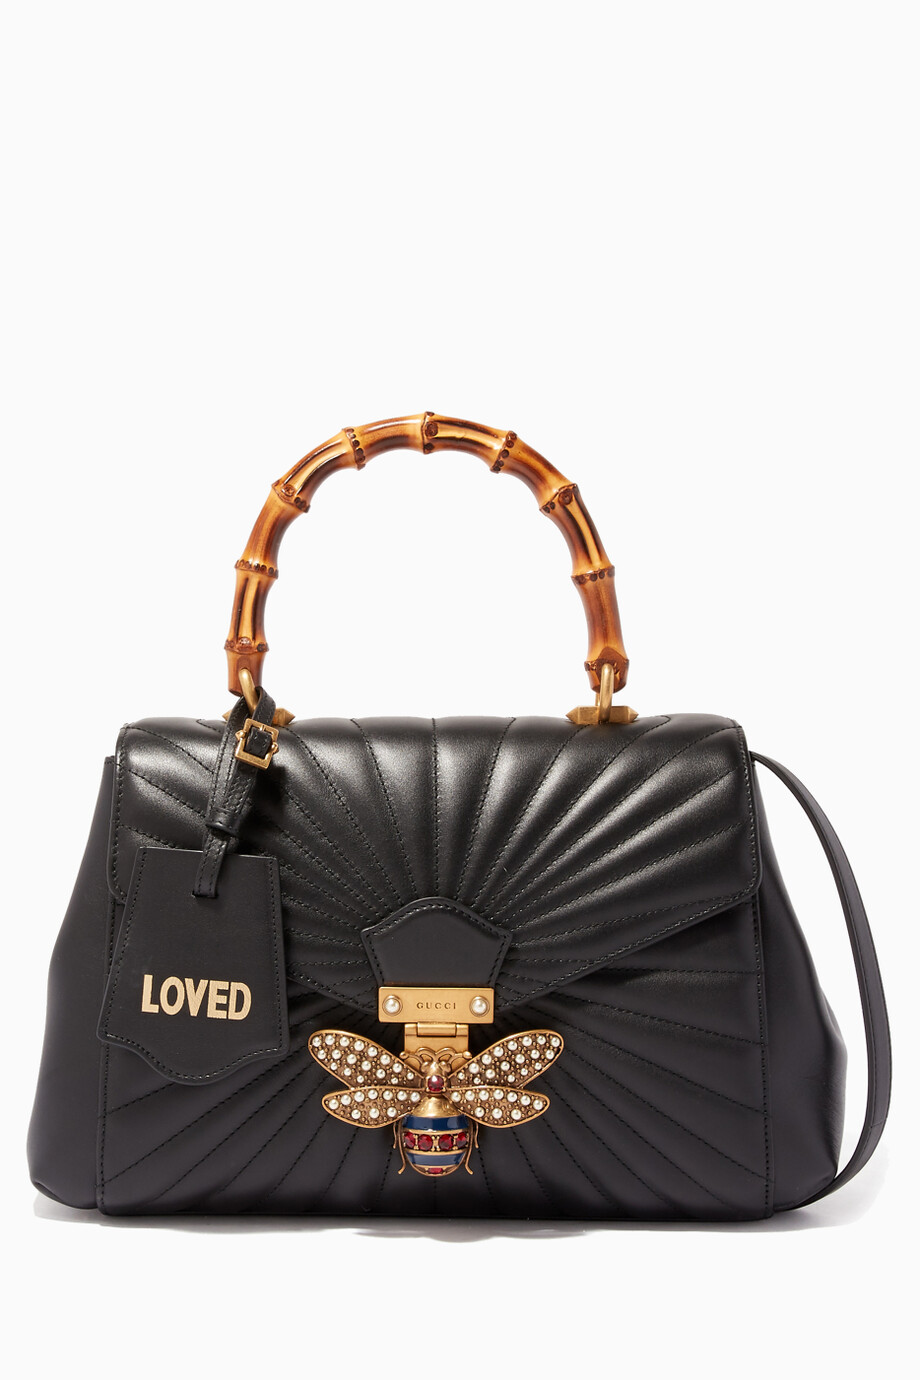 6cbe5eb1d71f Shop Gucci Black Black Queen Margaret Quilted Top-Handle Bag for Women |  Ounass UAE